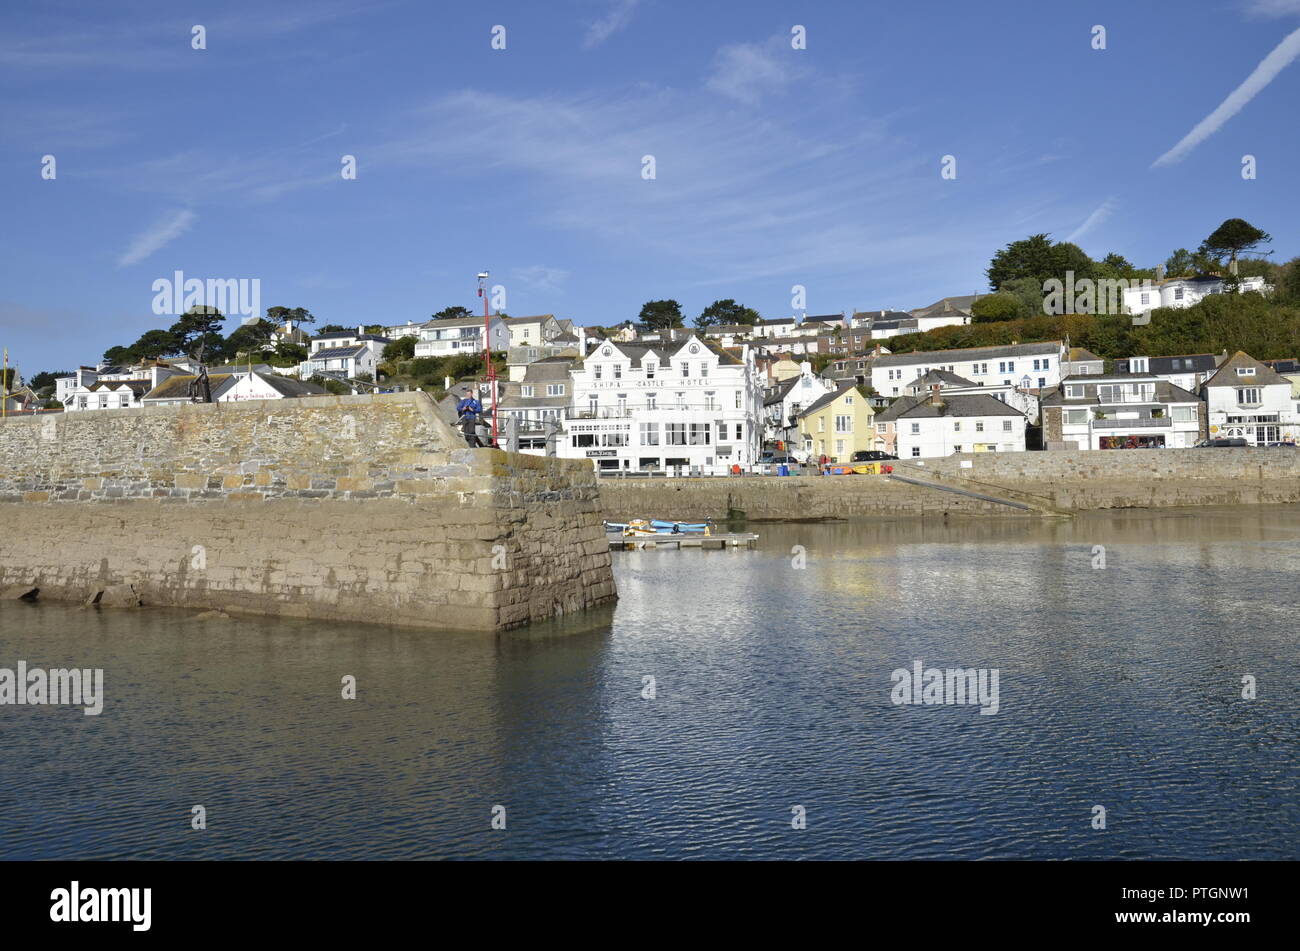 The picturesque harbour and frontage at the small village of St Mawes on the River Fal in Cornwall Stock Photo